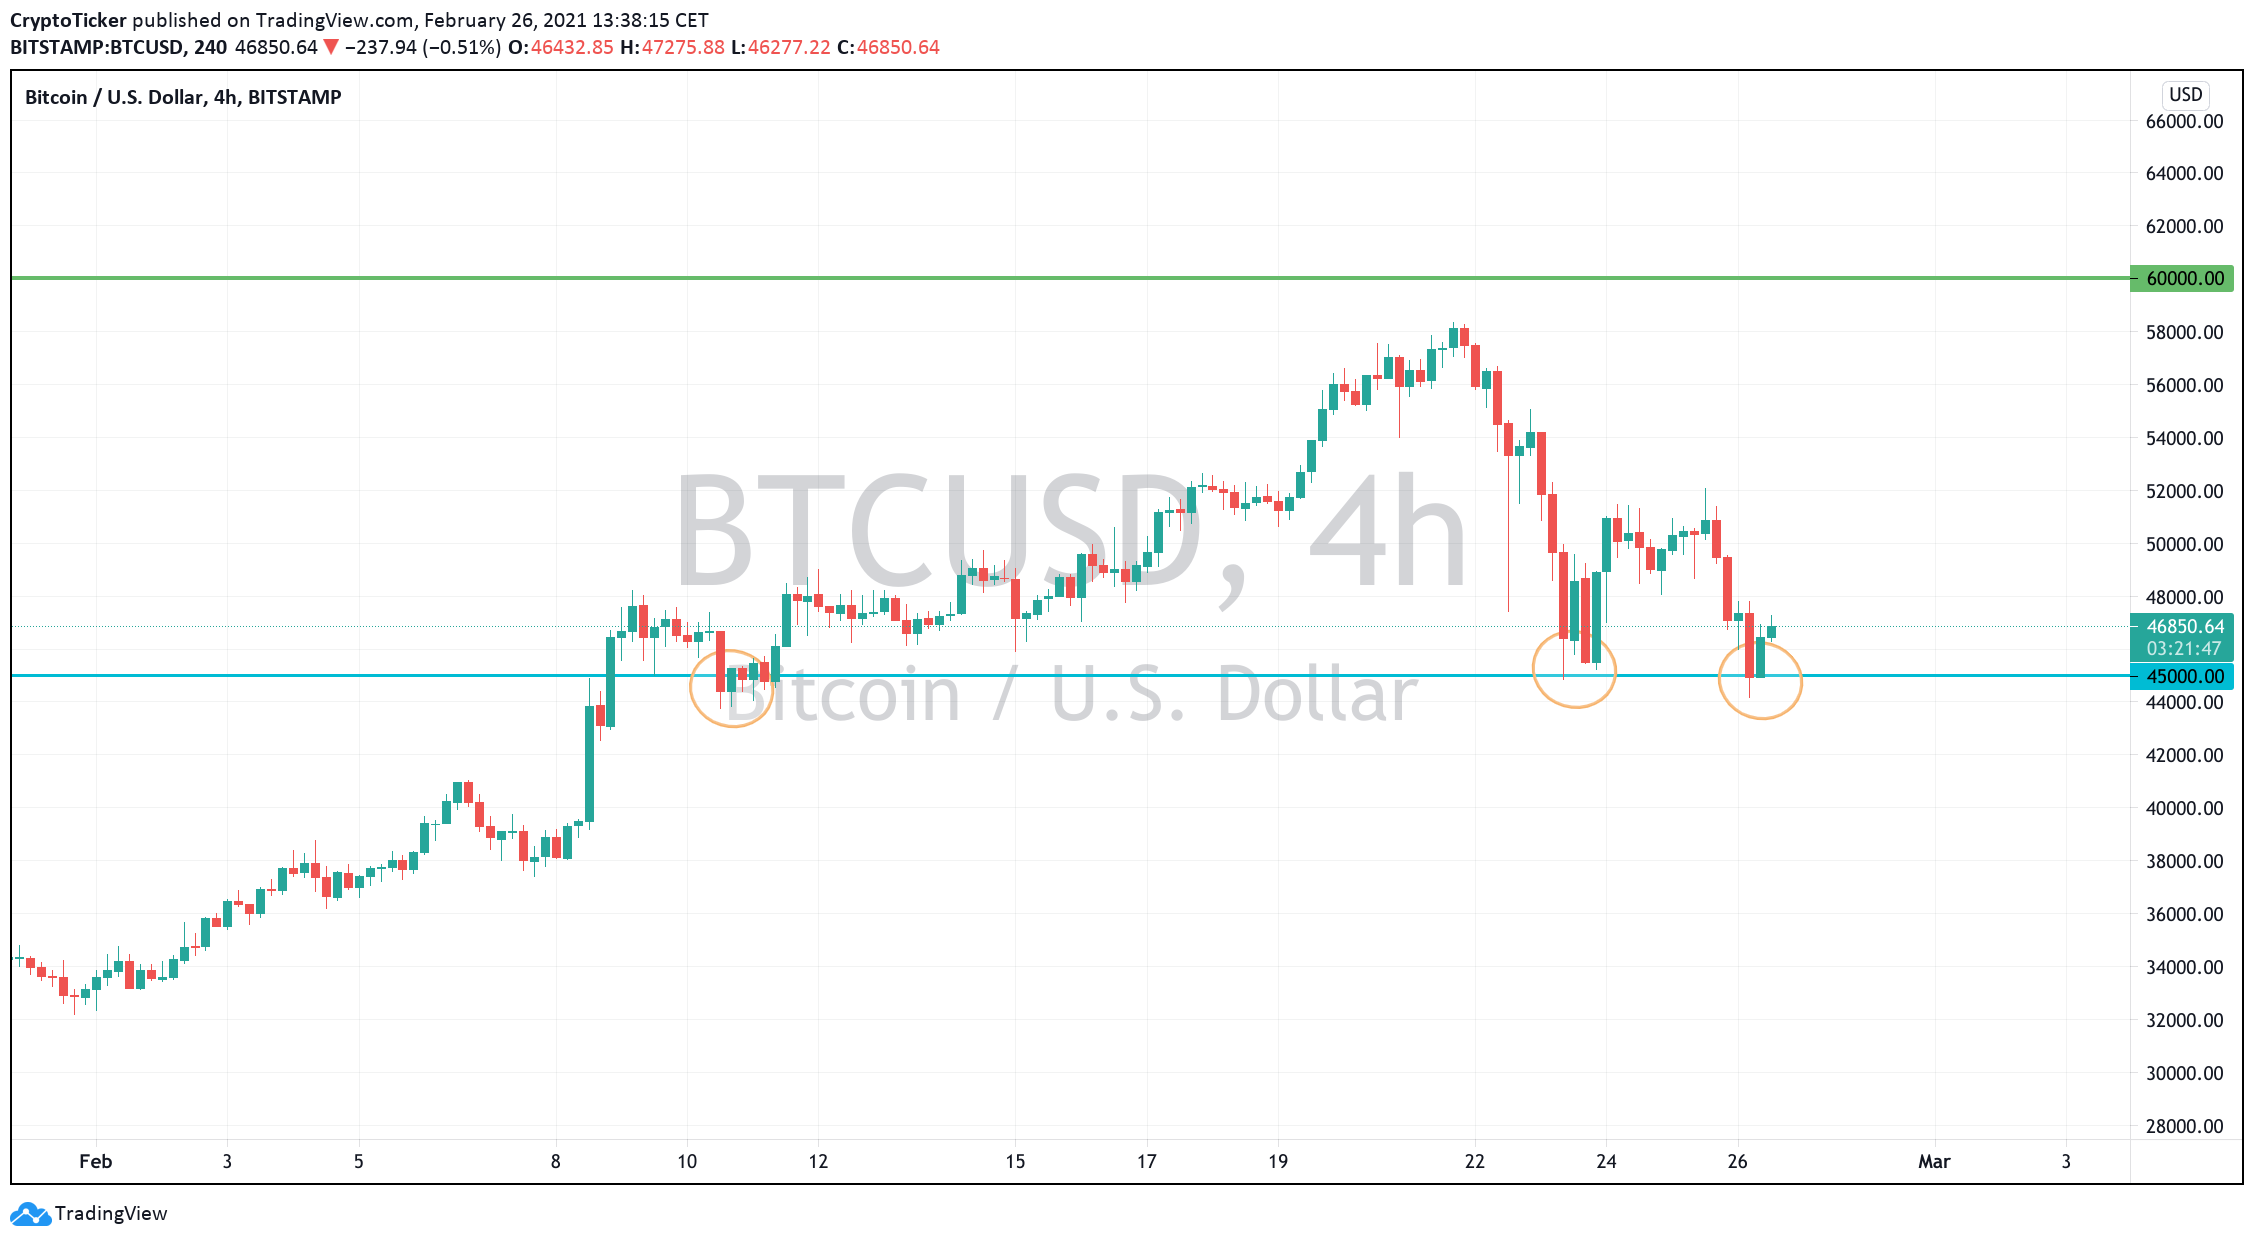 BTC/USD 4-hours chart showing a strong support area